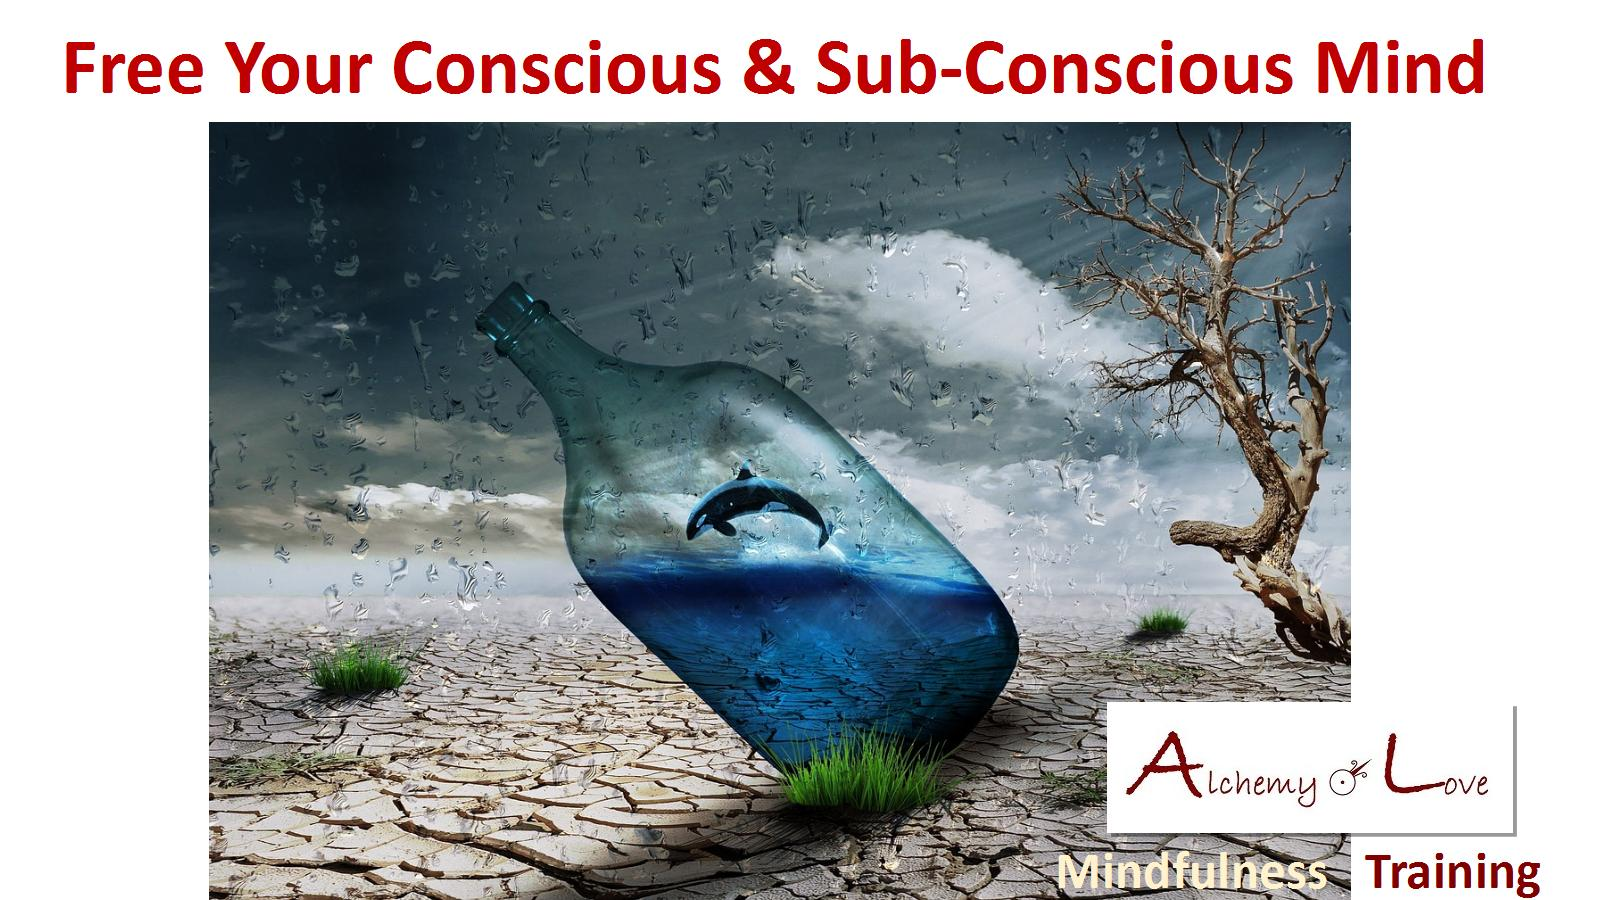 mindfulness consciousness identify true dreams free conscious and subconscious mind